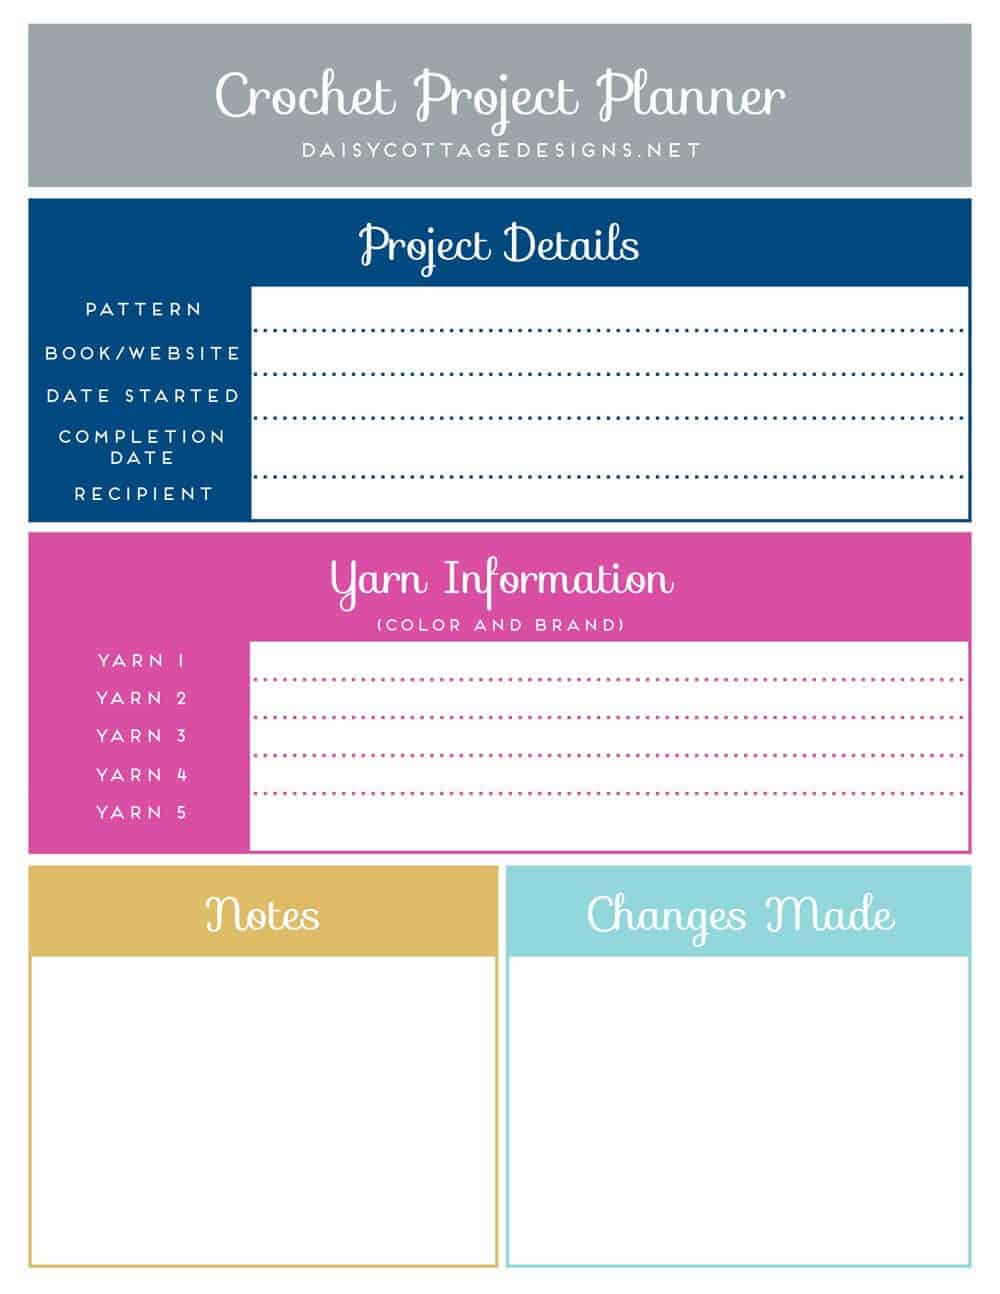 Crochet Project Planner Daisy Cottage Designs – Project Planners